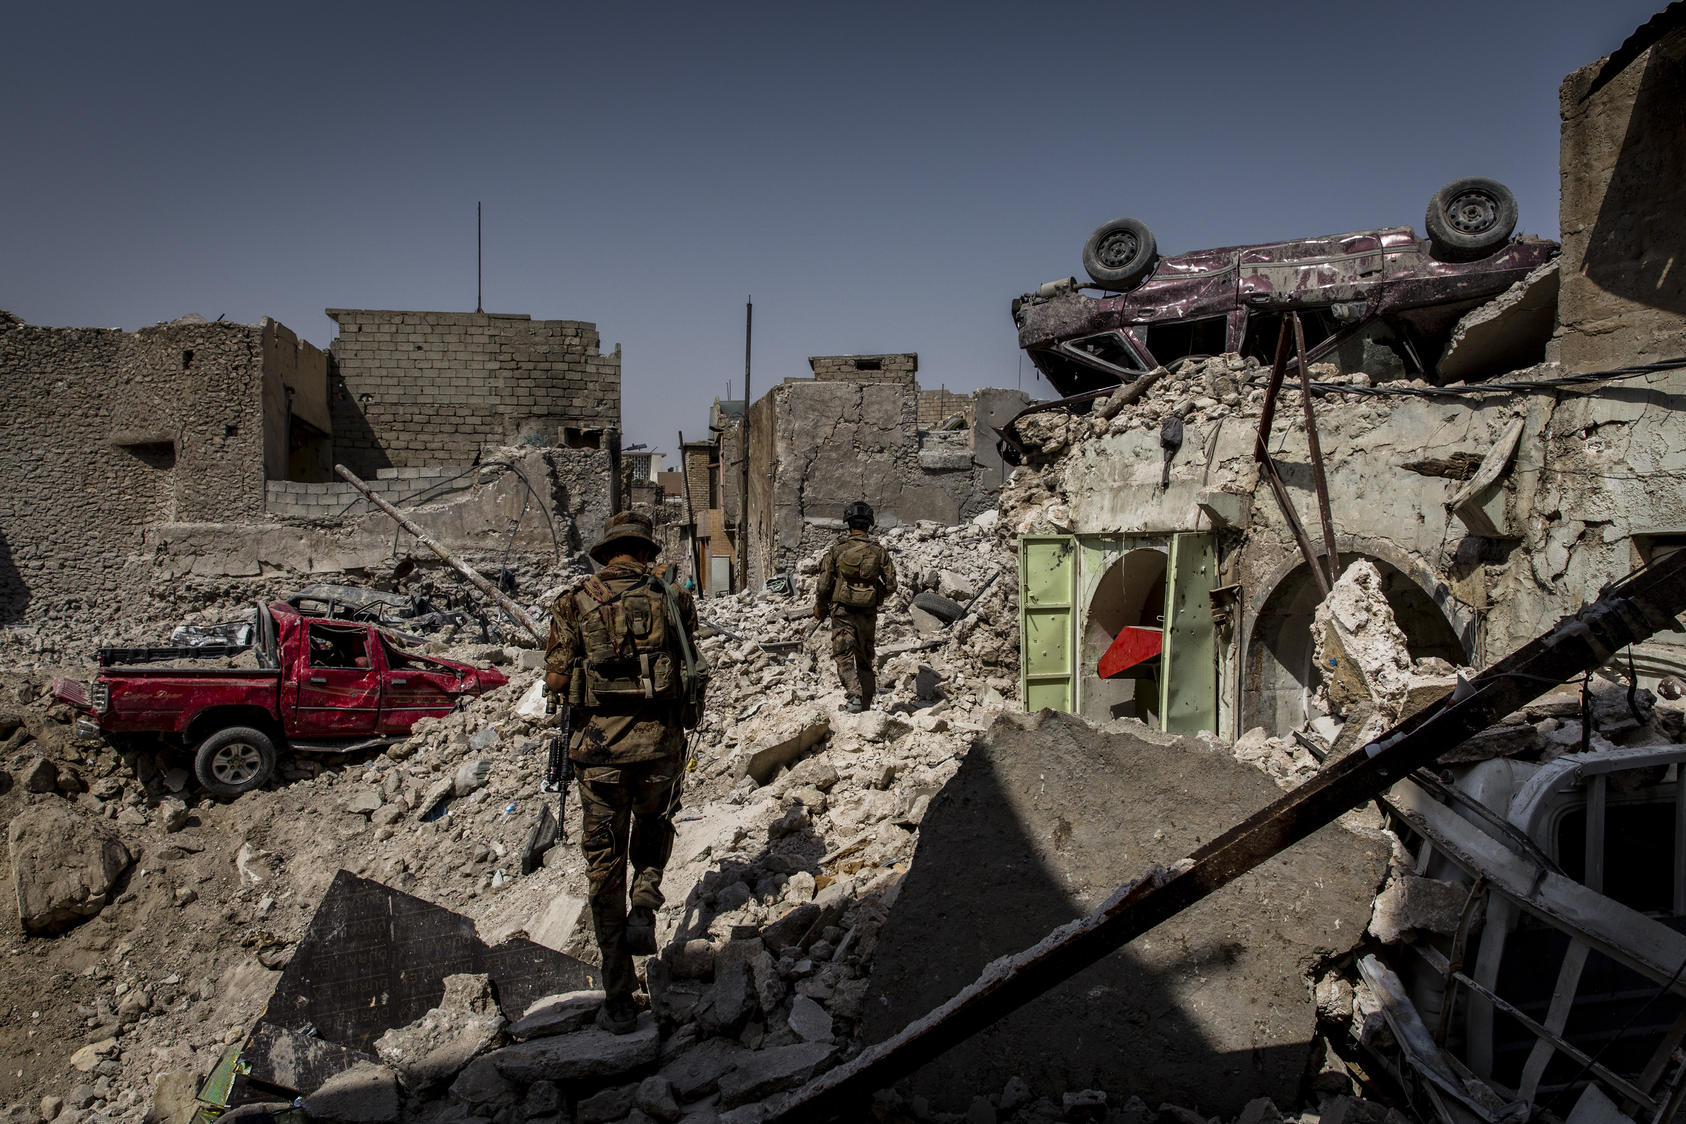 Iraqi special forces soldiers search houses for explosives and any remaining Islamic State fighters in a destroyed section of the Old City of Mosul, Iraq, July 23, 2017. Photo courtesy of Ivor Prickett/The New York Times.